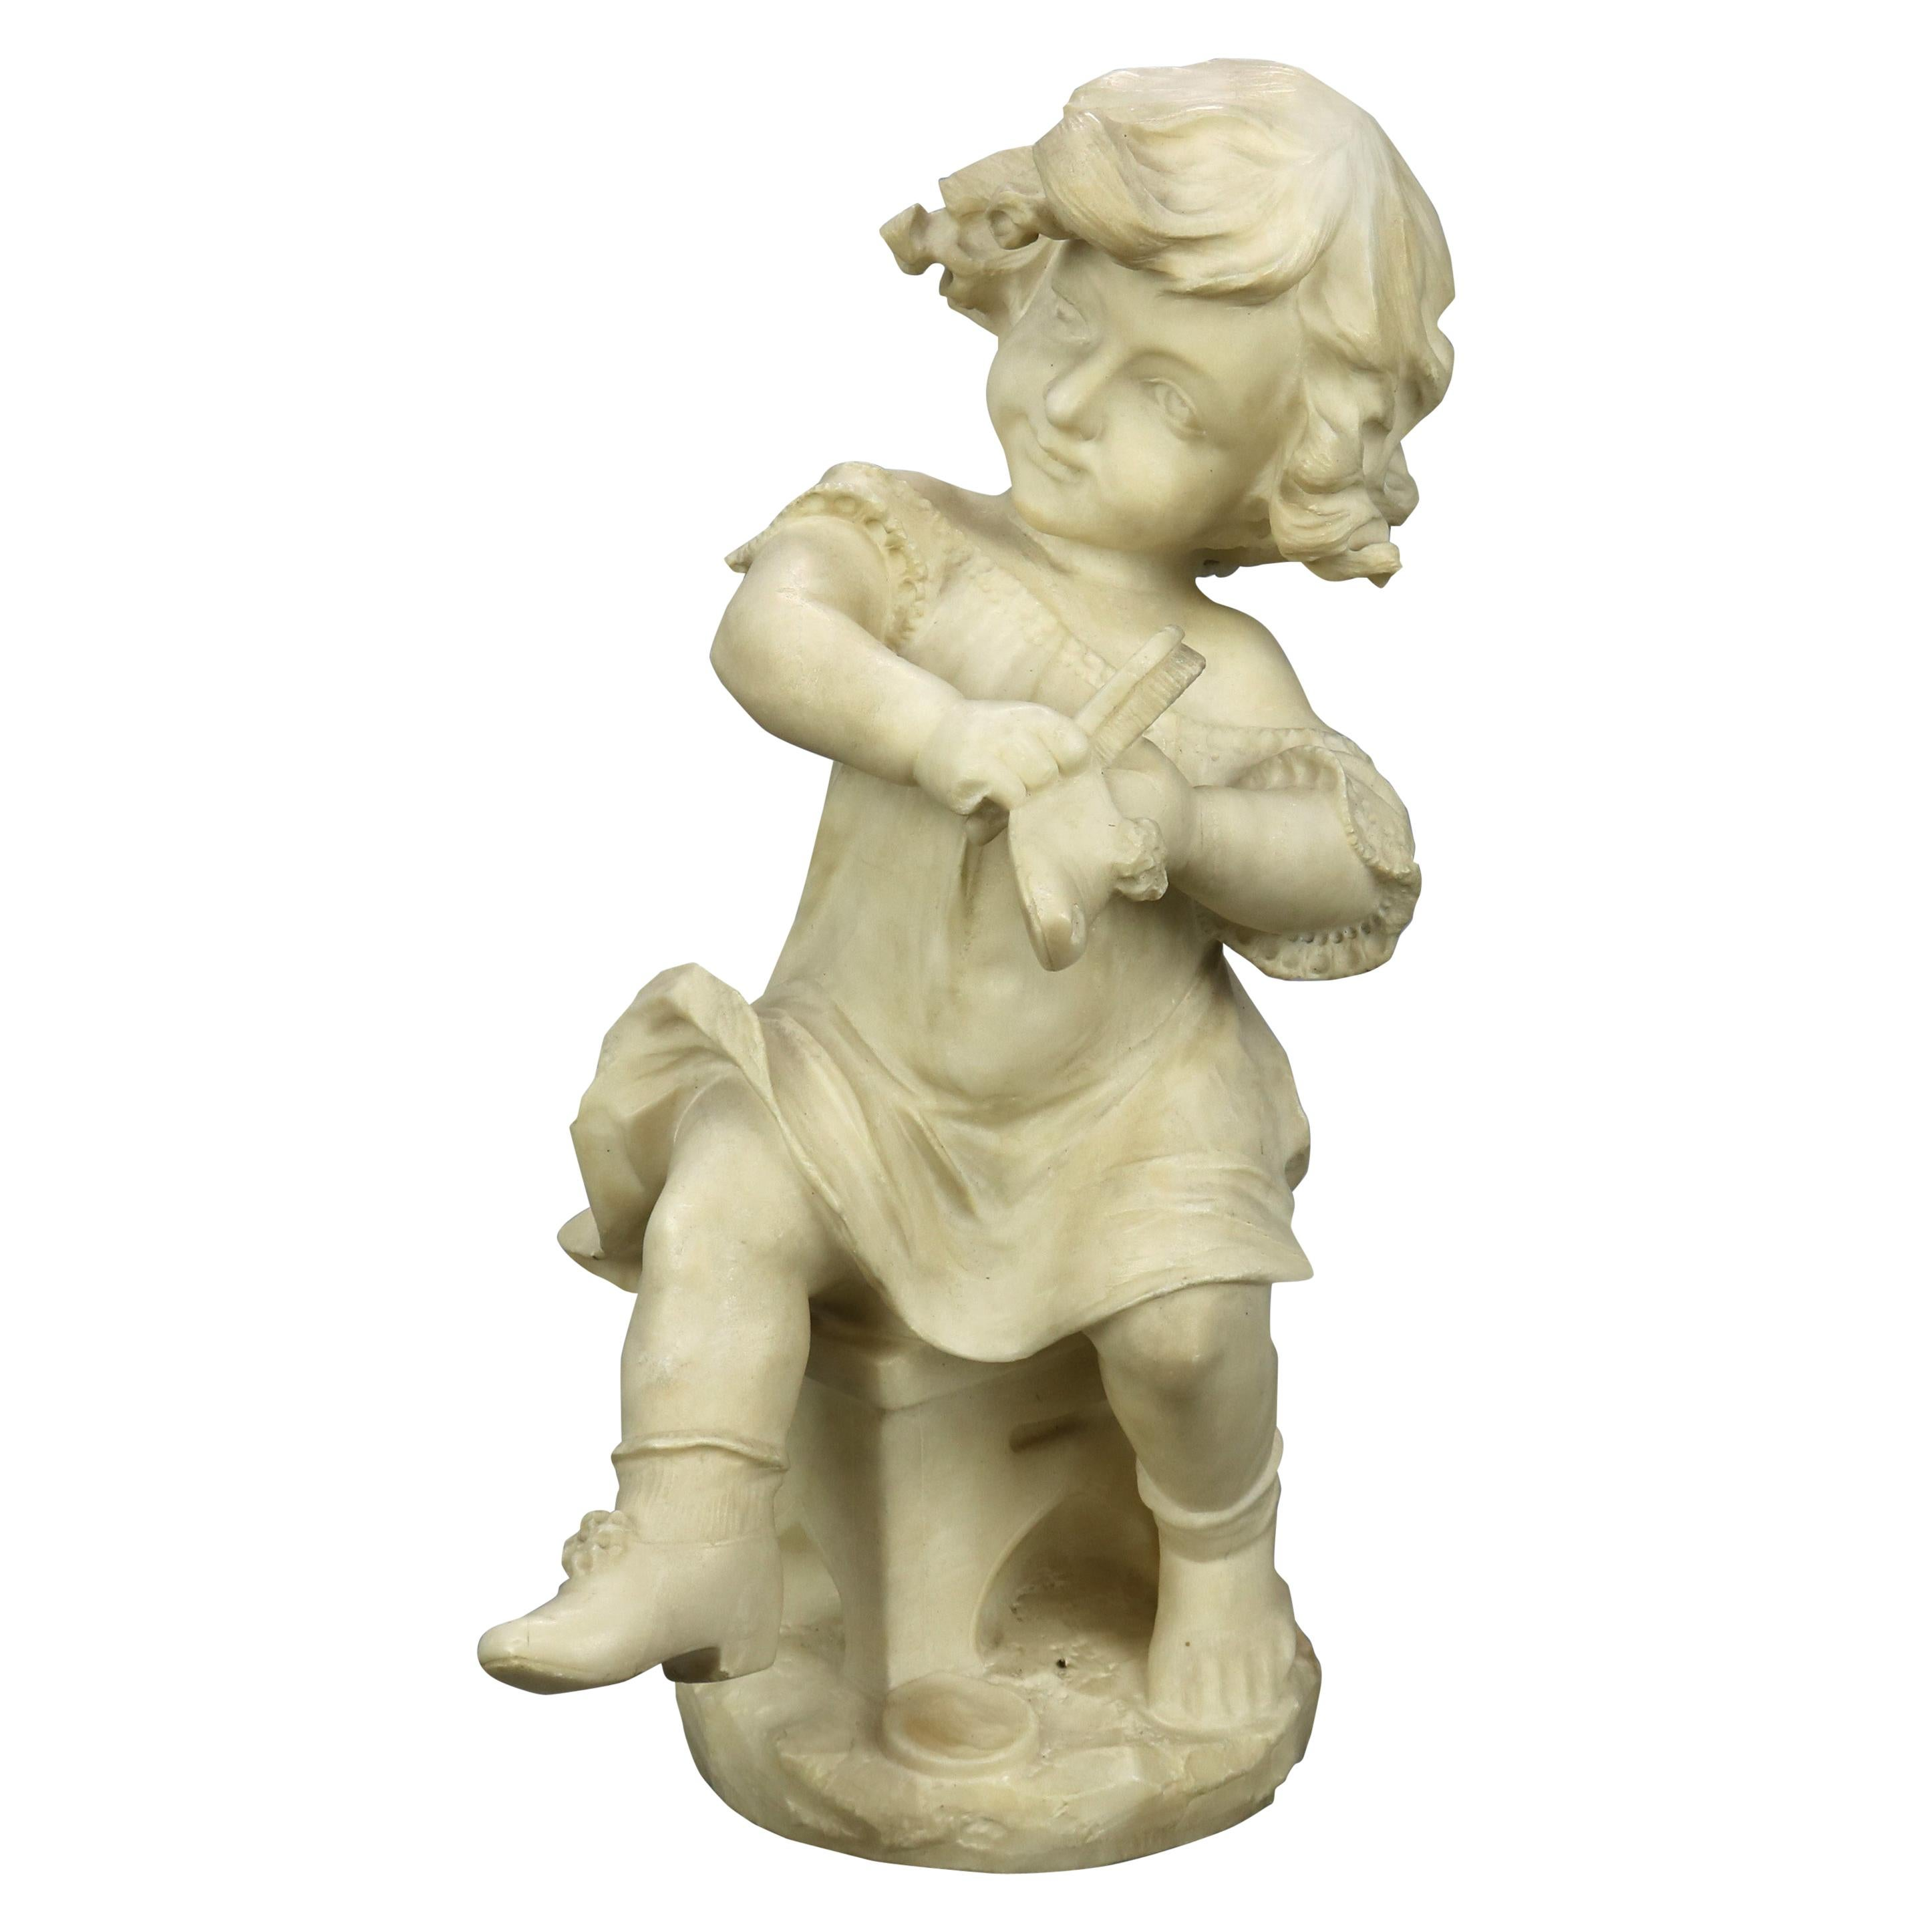 Antique Carved Alabaster Sculpture of Young Girl by Adolpho Cipriani, c1890